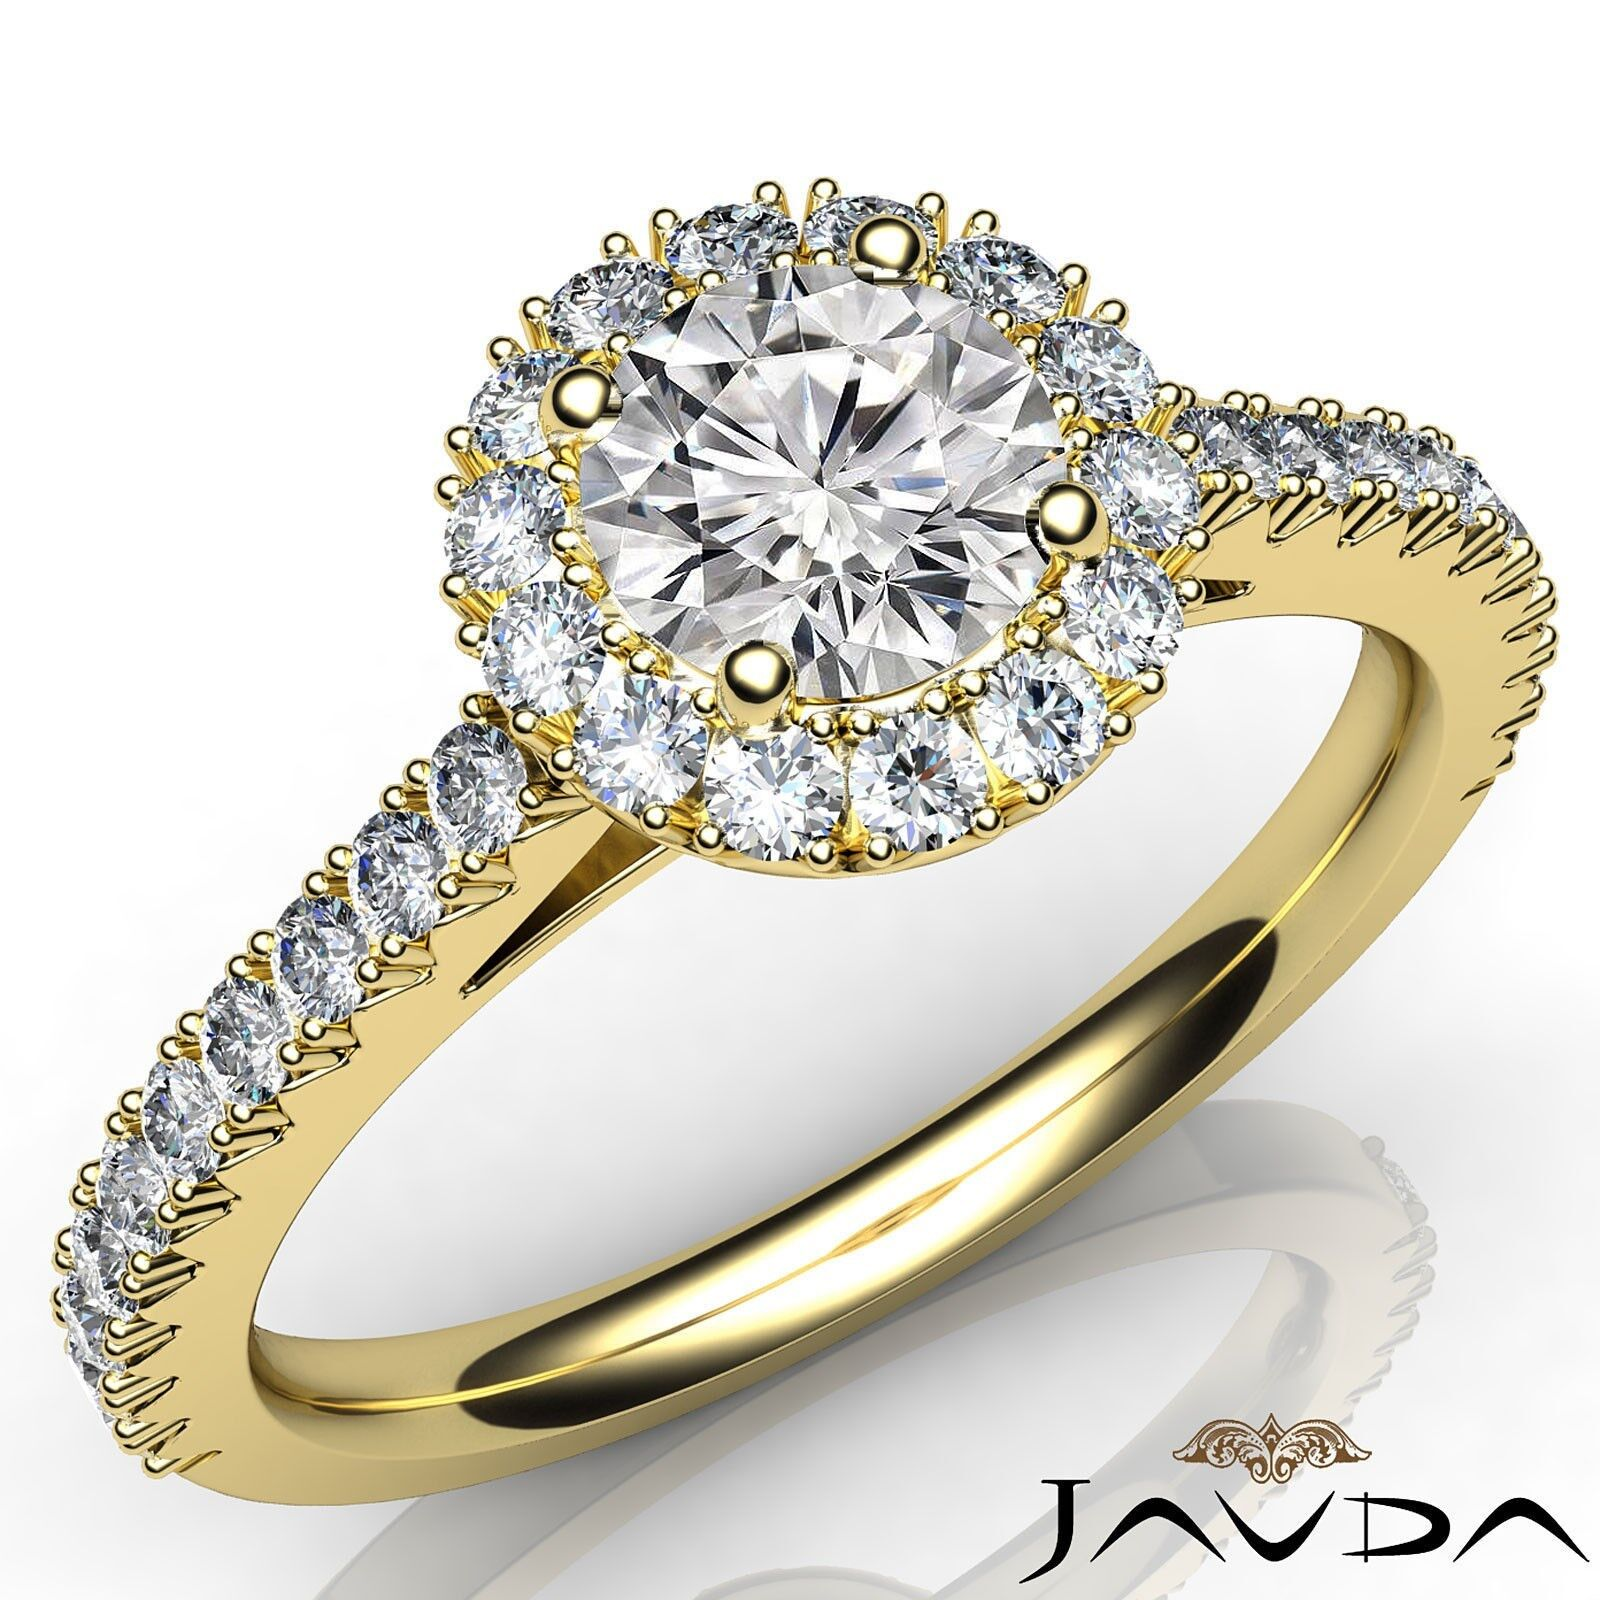 French Pave Set Halo Round Diamond Engagement Micro Pave Ring GIA F VVS1 1.5 Ct